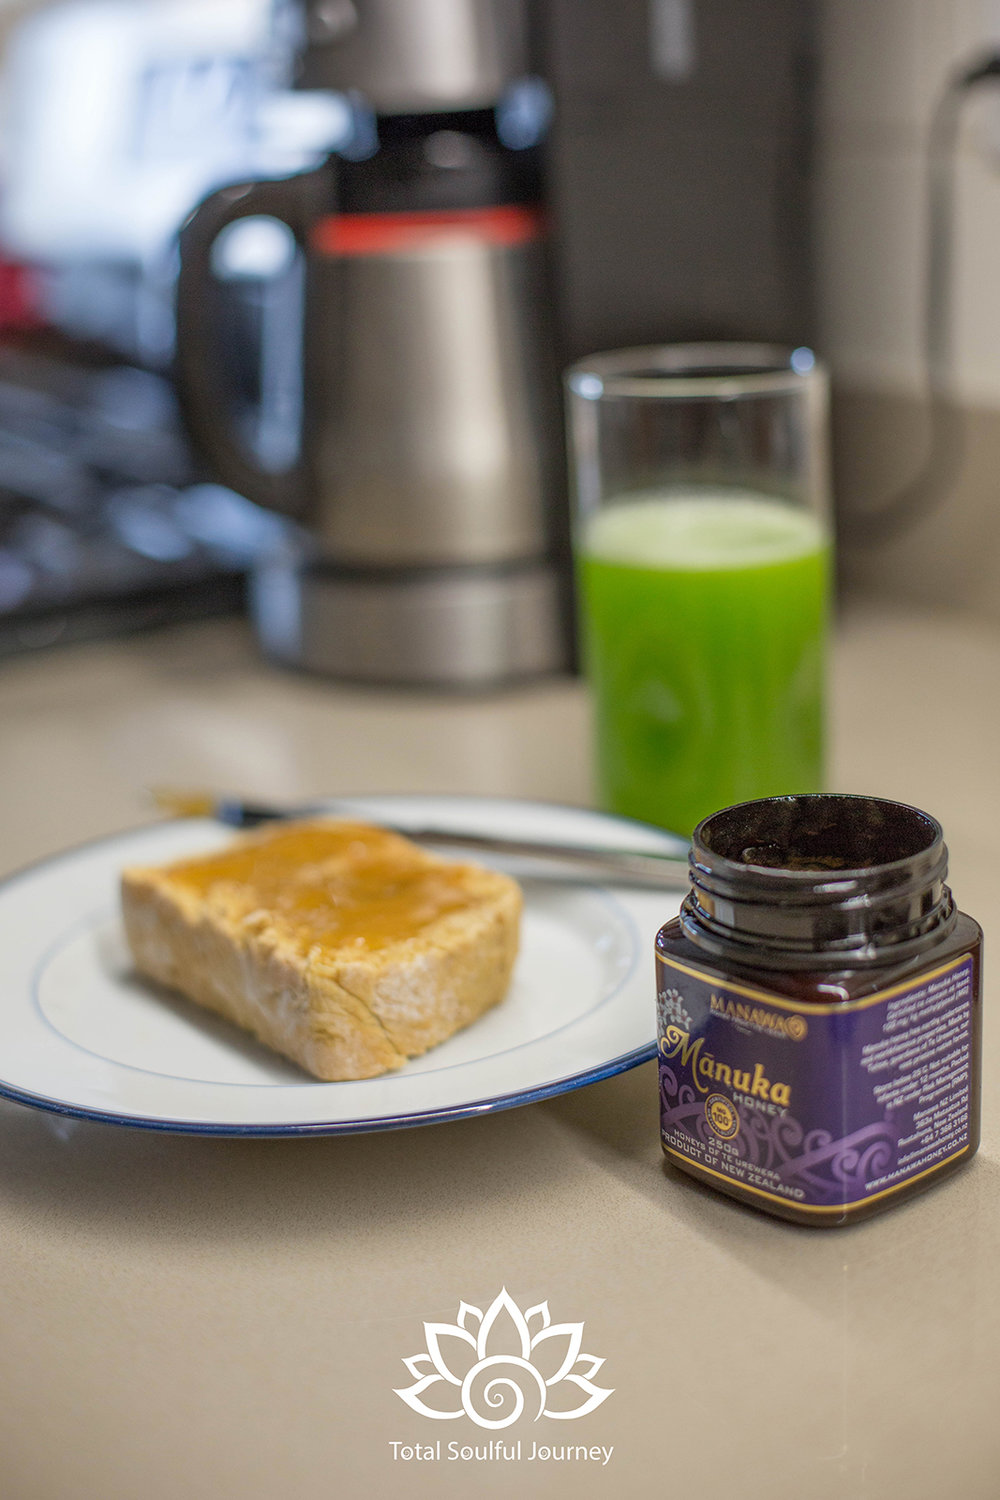 Manuka Honey is yummy on toast or in Tea - Photography